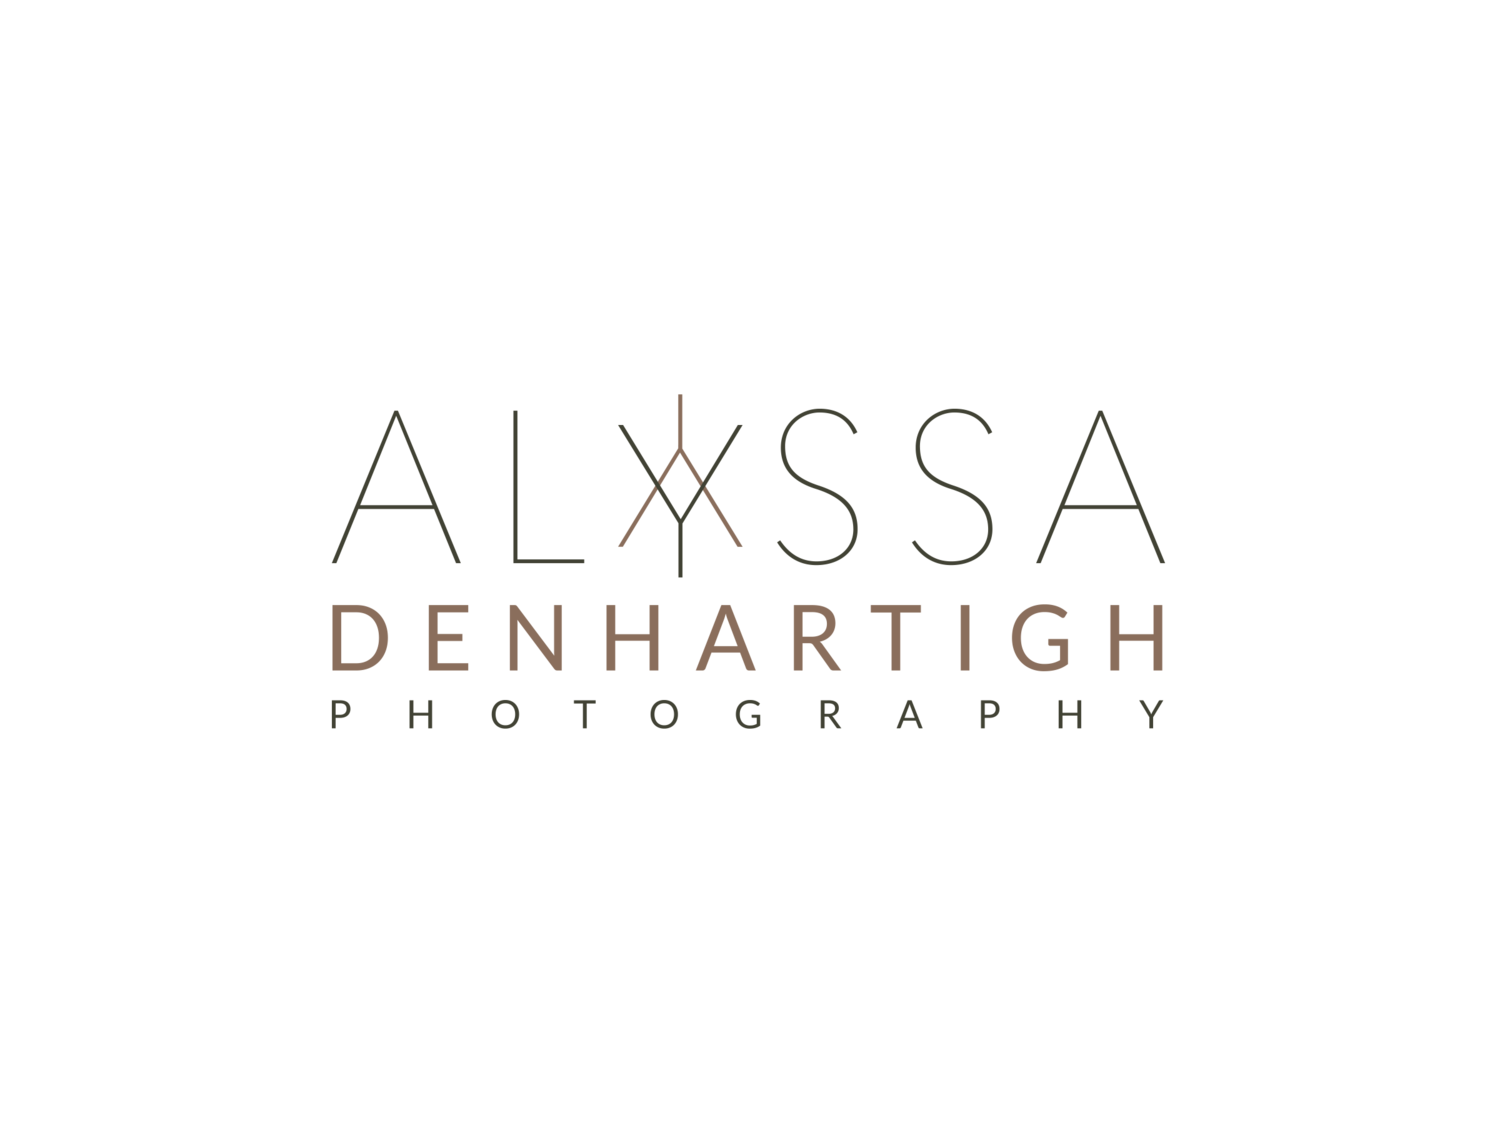 Grand Rapids Wedding Photographer, Alyssa DenHartigh Photography